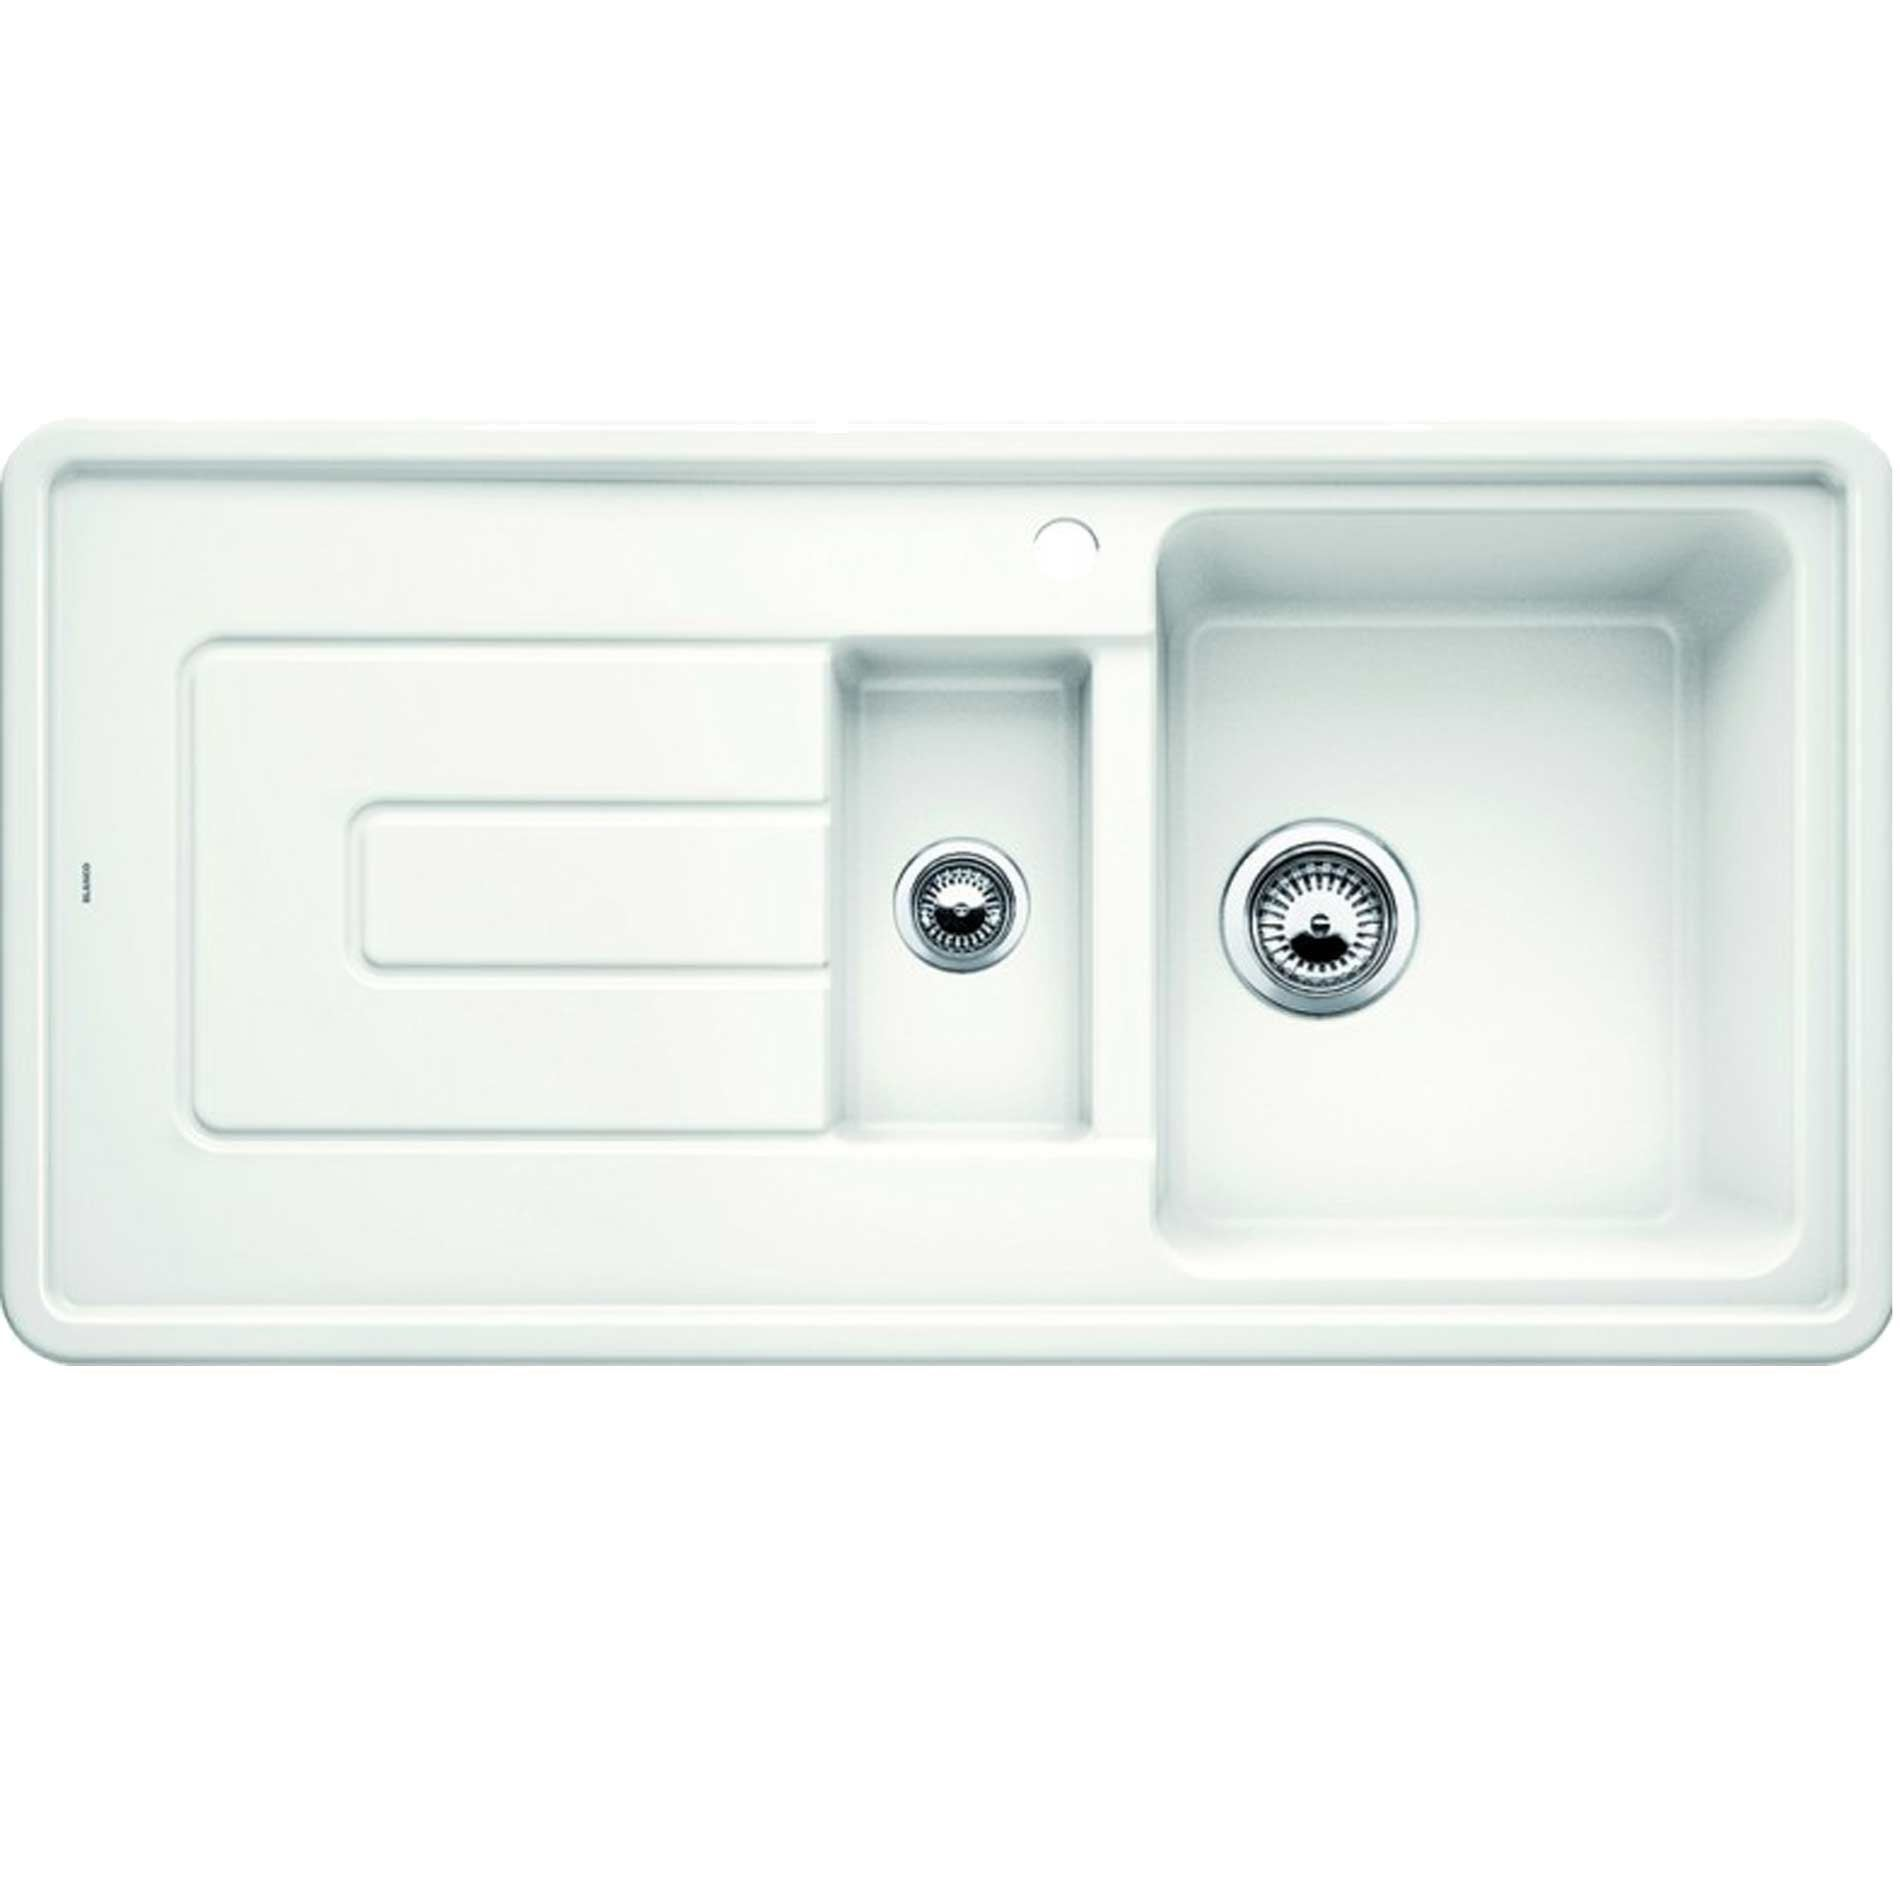 blanco ceramic kitchen sinks blanco tolon 6 s ceramic sink kitchen sinks amp taps 4774